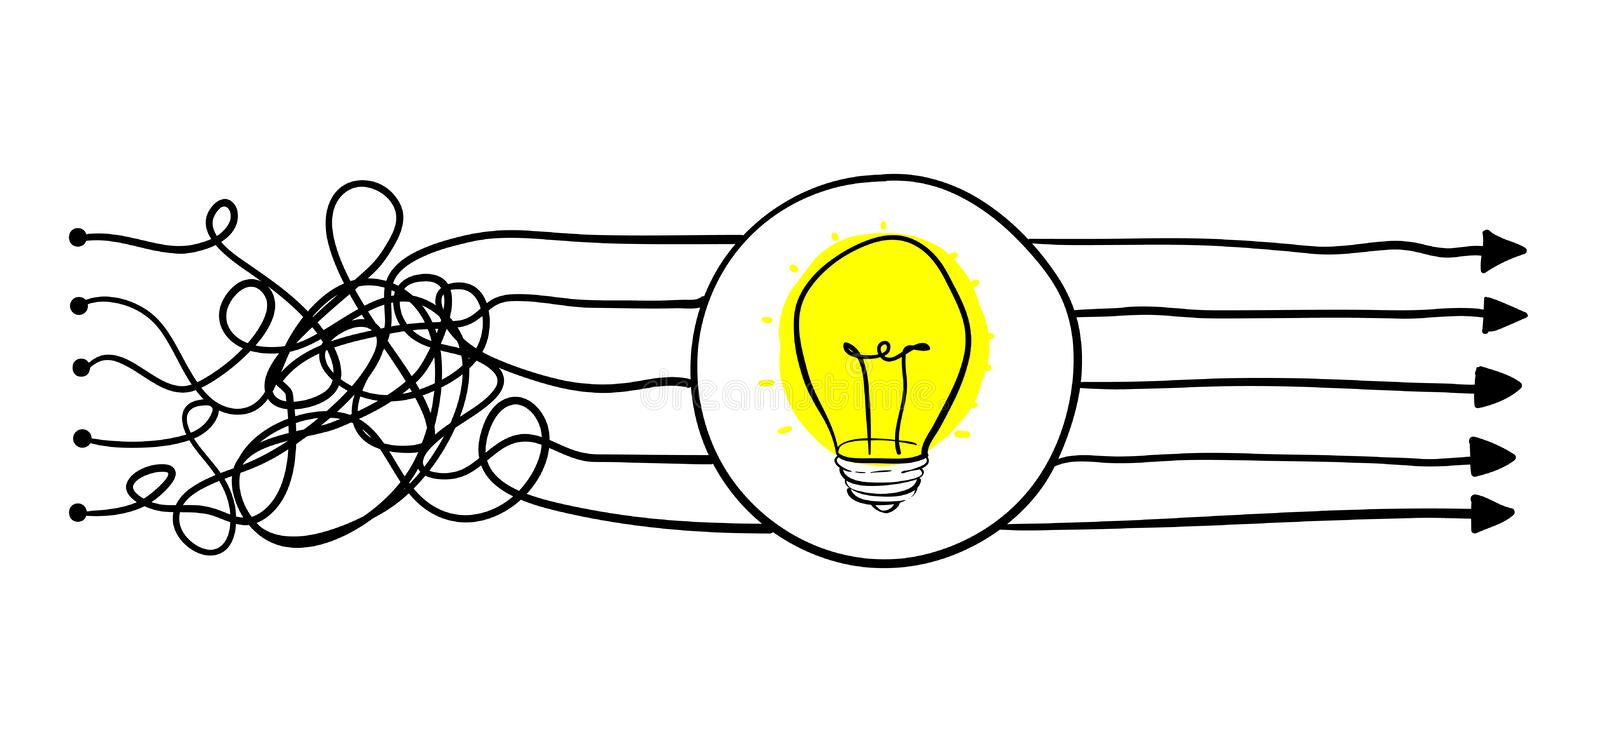 Simplifying the complex, confusion clarity or path. vector idea concept with lightbulbs doodle illustration. Isolated royalty free illustration